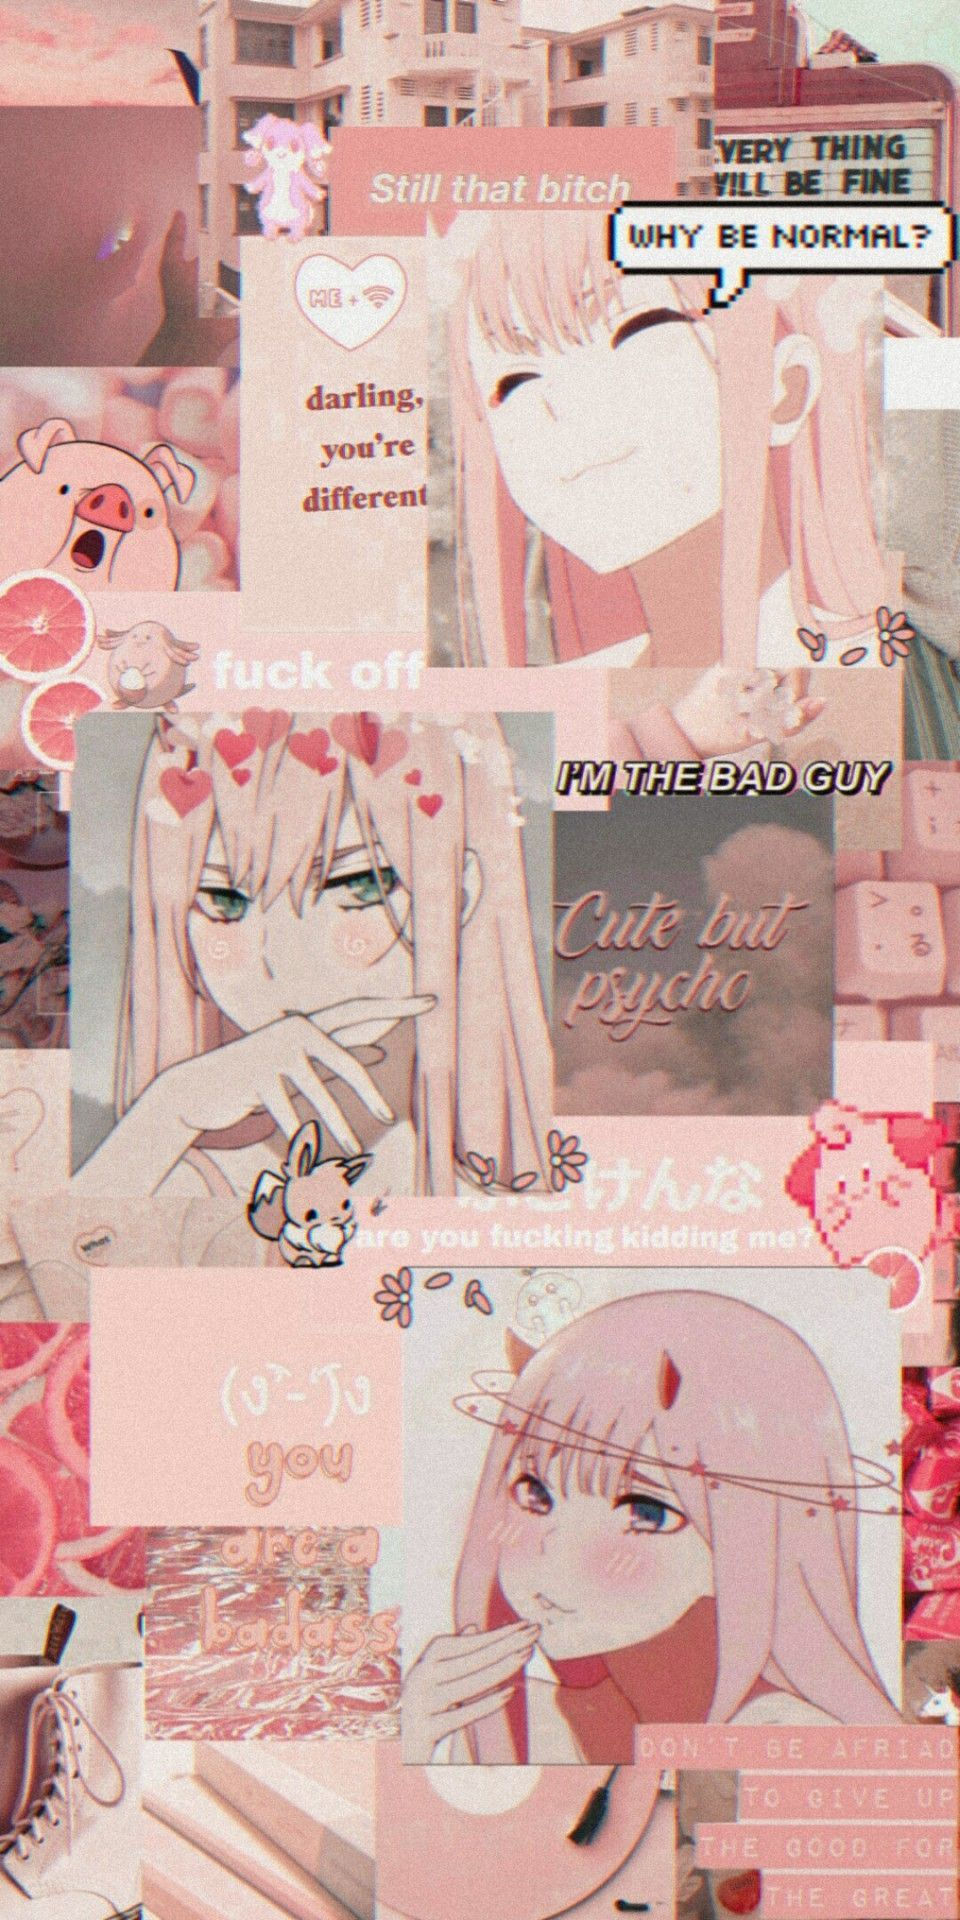 Get Awesome Aesthetic Anime Wallpaper Iphone Derek Shirogane In 2020 Anime Wallpaper Iphone Pink Wallpaper Anime Anime Wallpaper